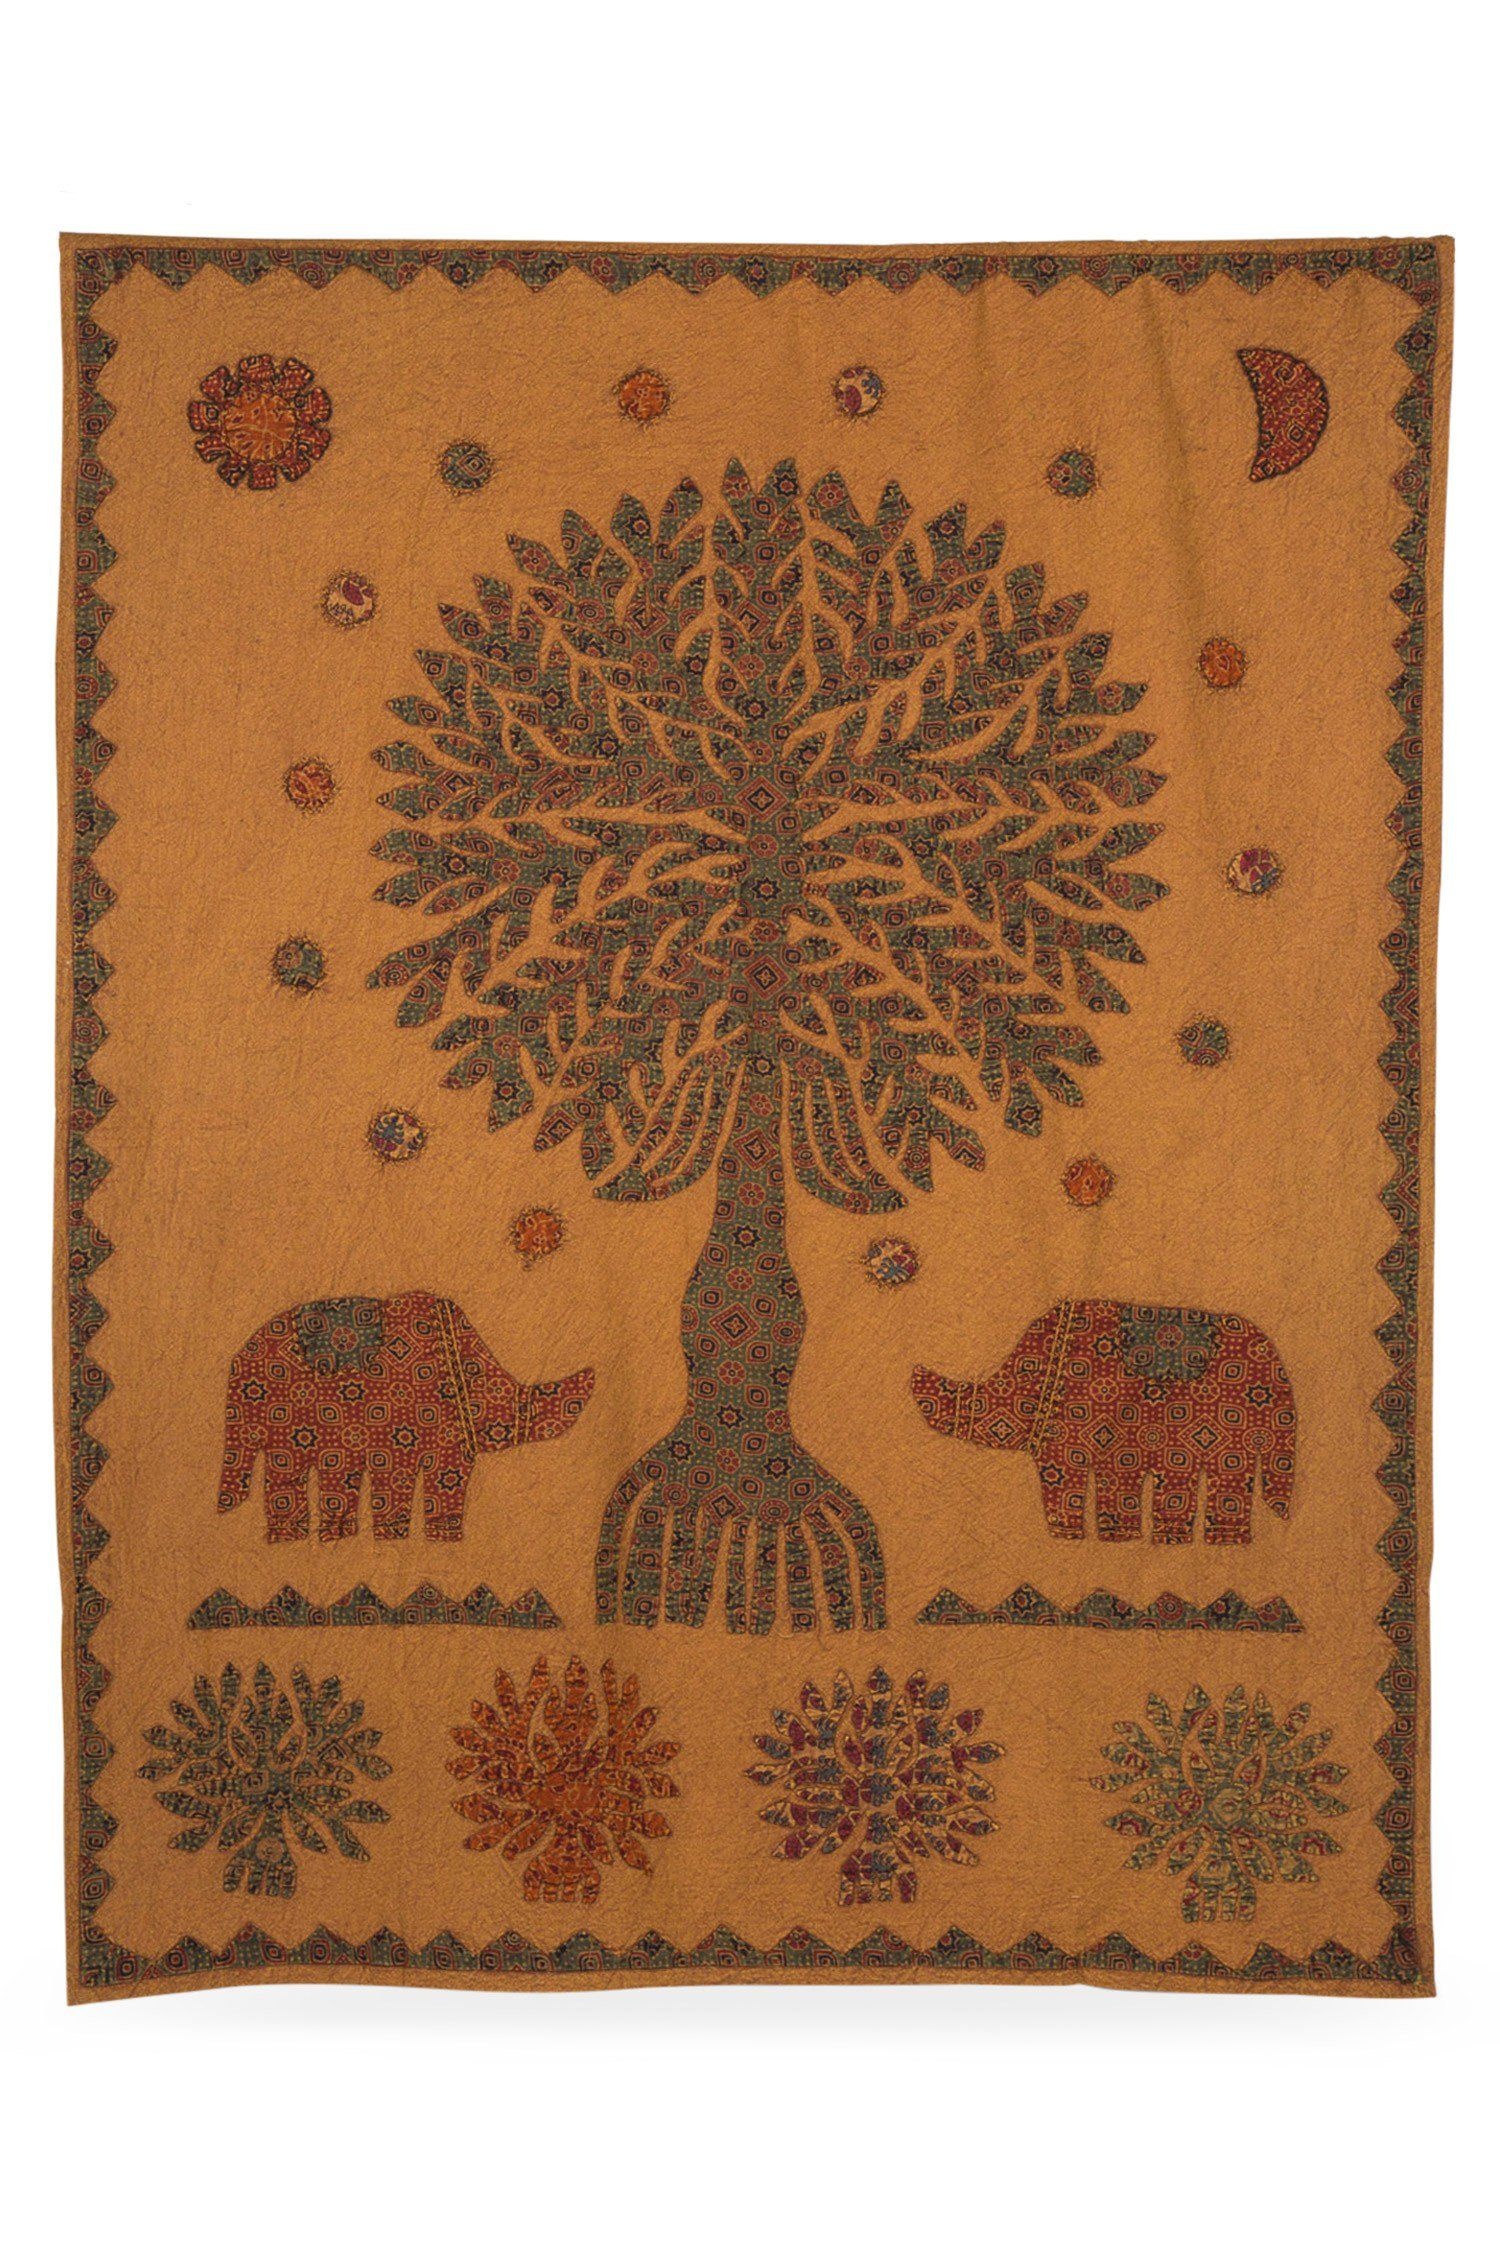 Memory Tree Wall Hanging Handmade In India Fair Trade Elephant Tapestry Ethical Home Slow Design Boho Bohemian